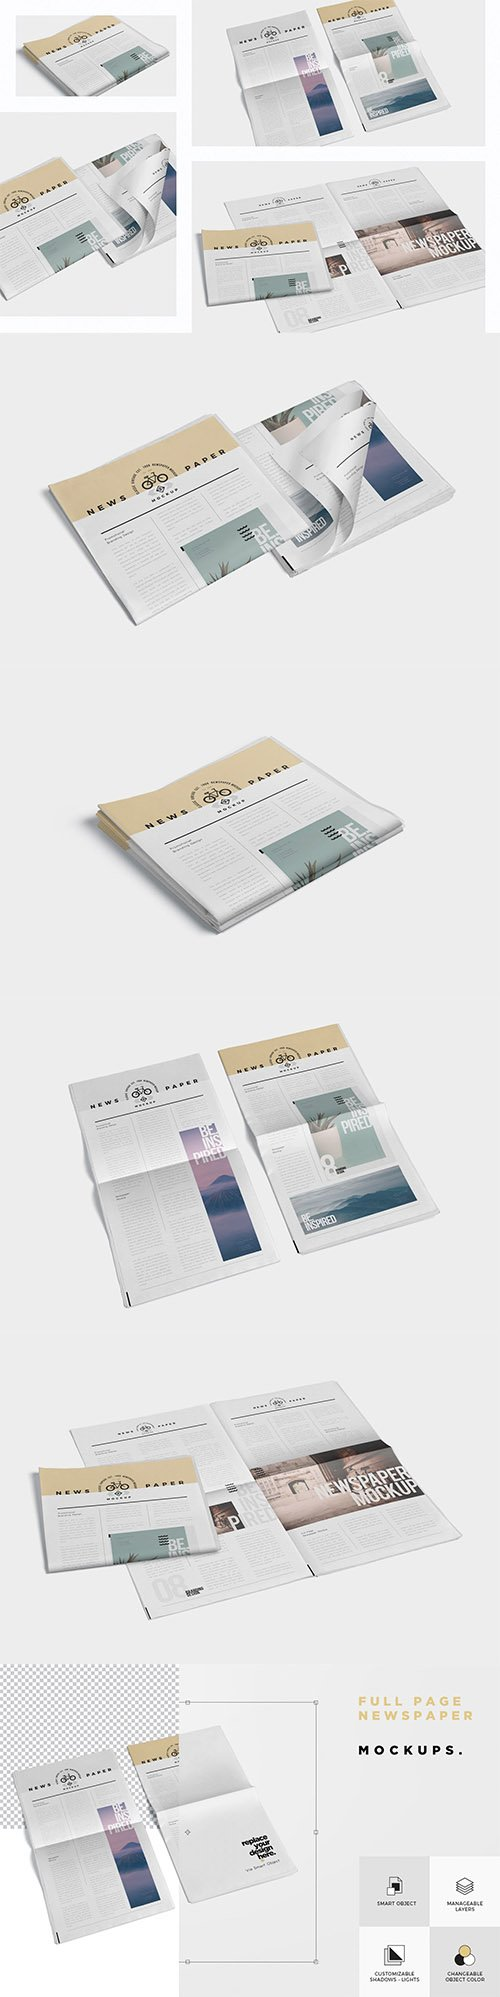 Full Page Newspaper Mockups PSD